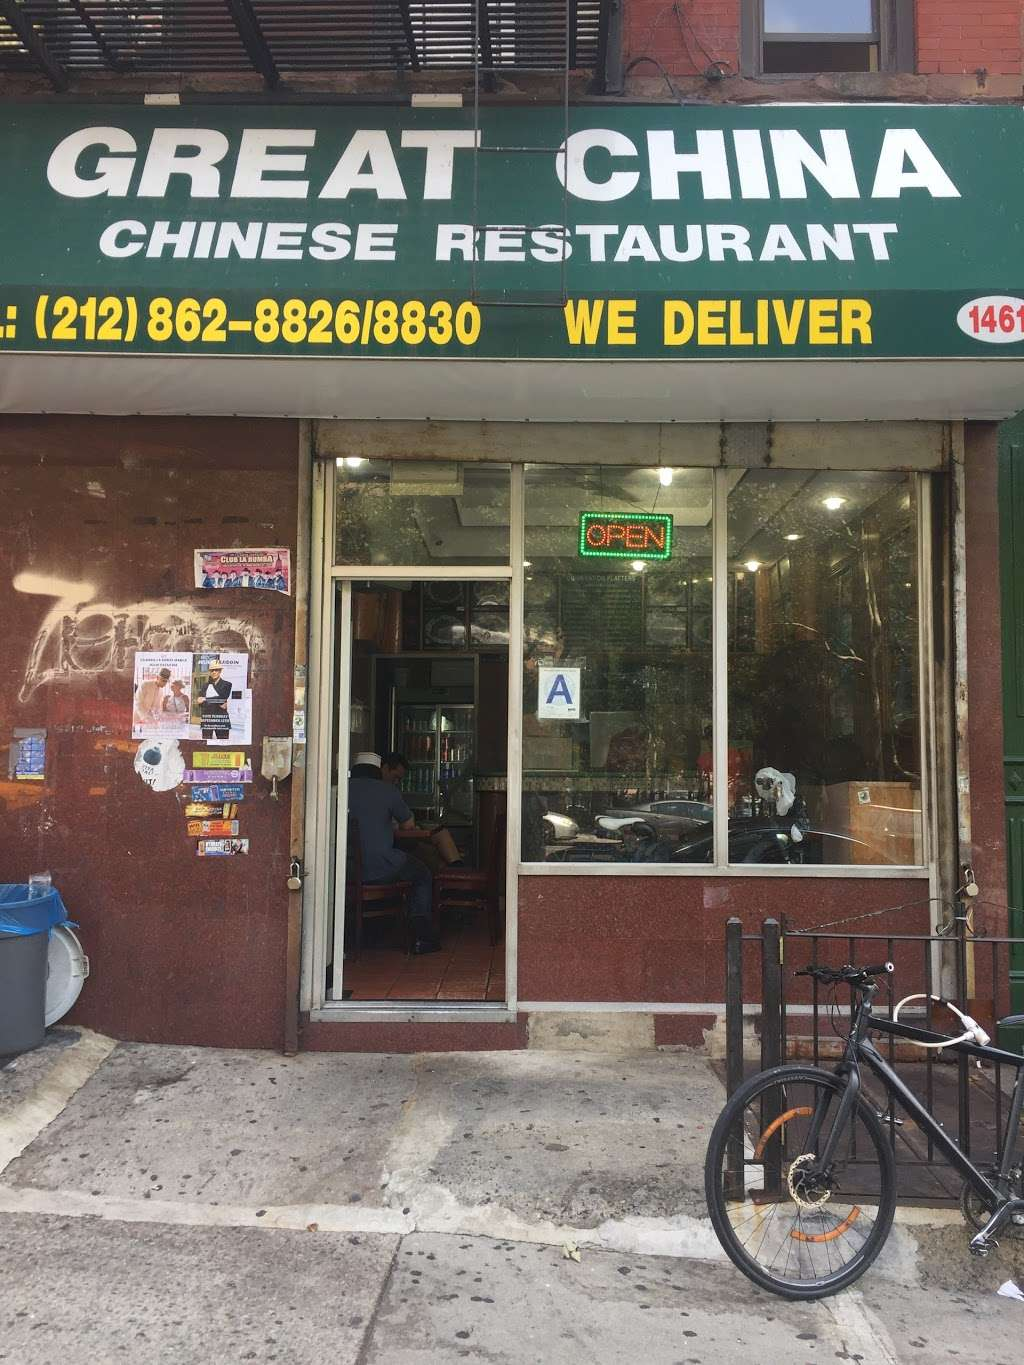 Great China - restaurant  | Photo 2 of 7 | Address: 1461 Amsterdam Ave, New York, NY 10027, USA | Phone: (212) 862-8826